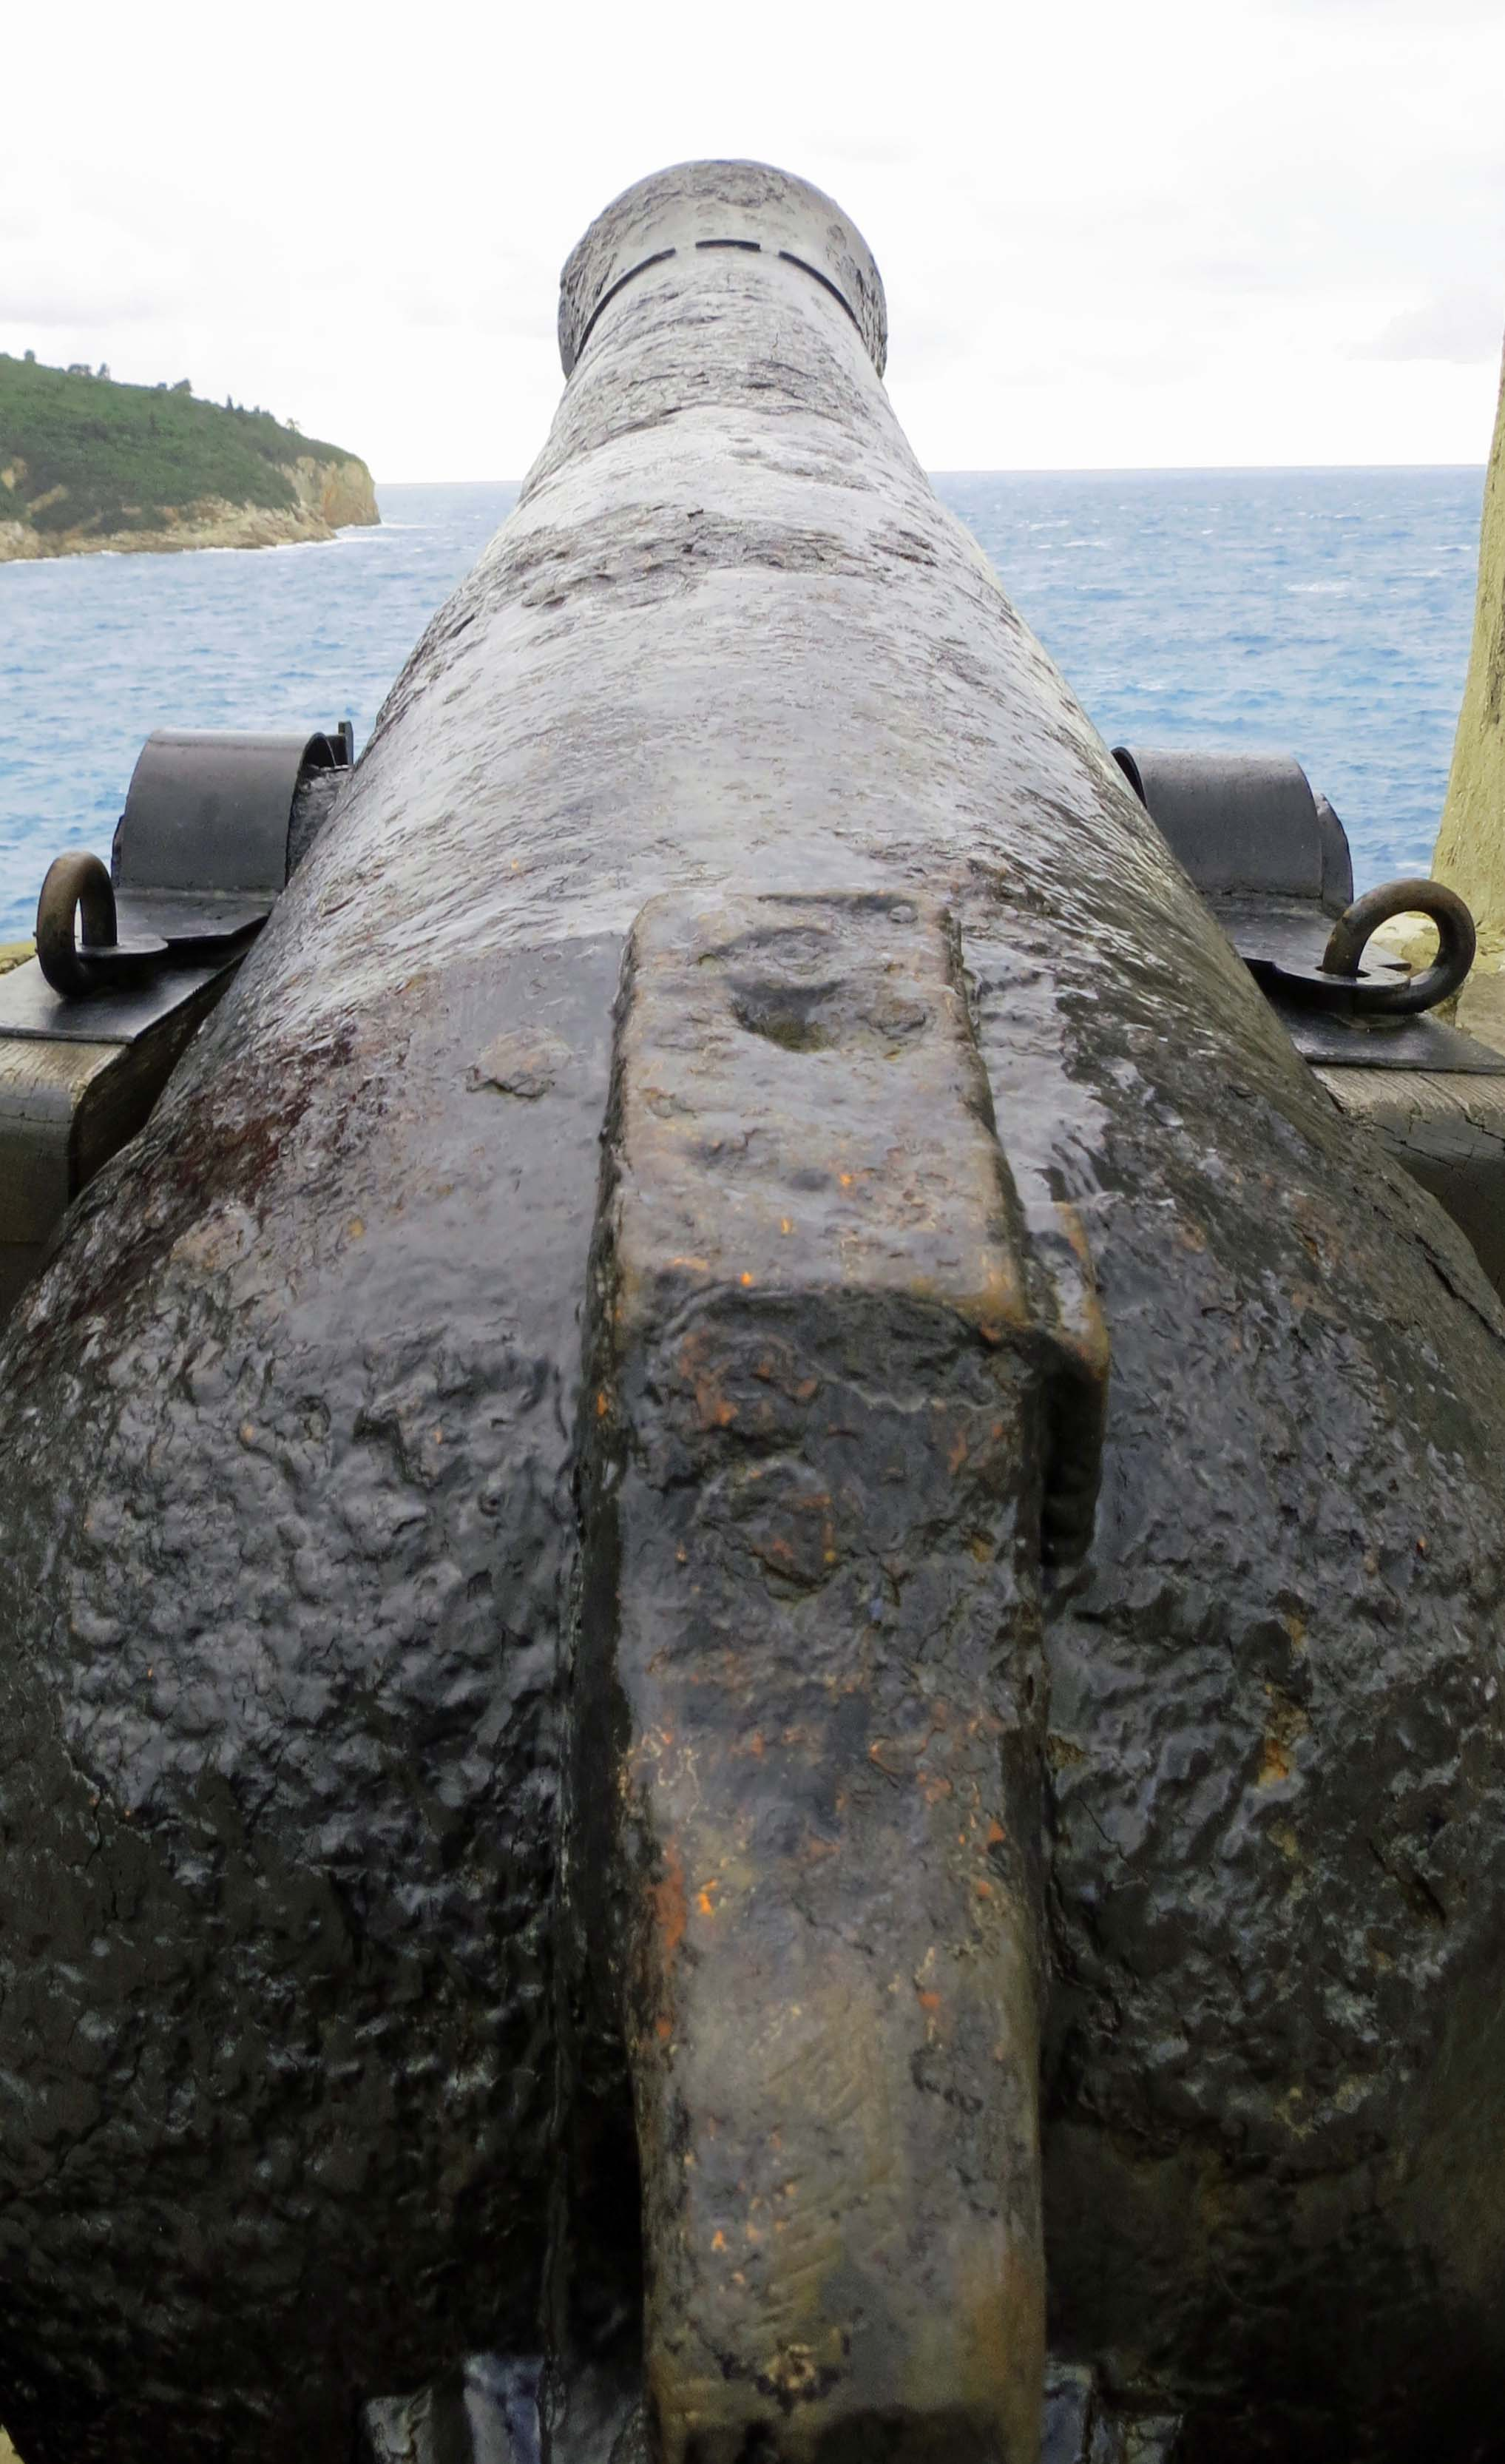 A cannon's perspective looking out from the walls of Dubrovnik.